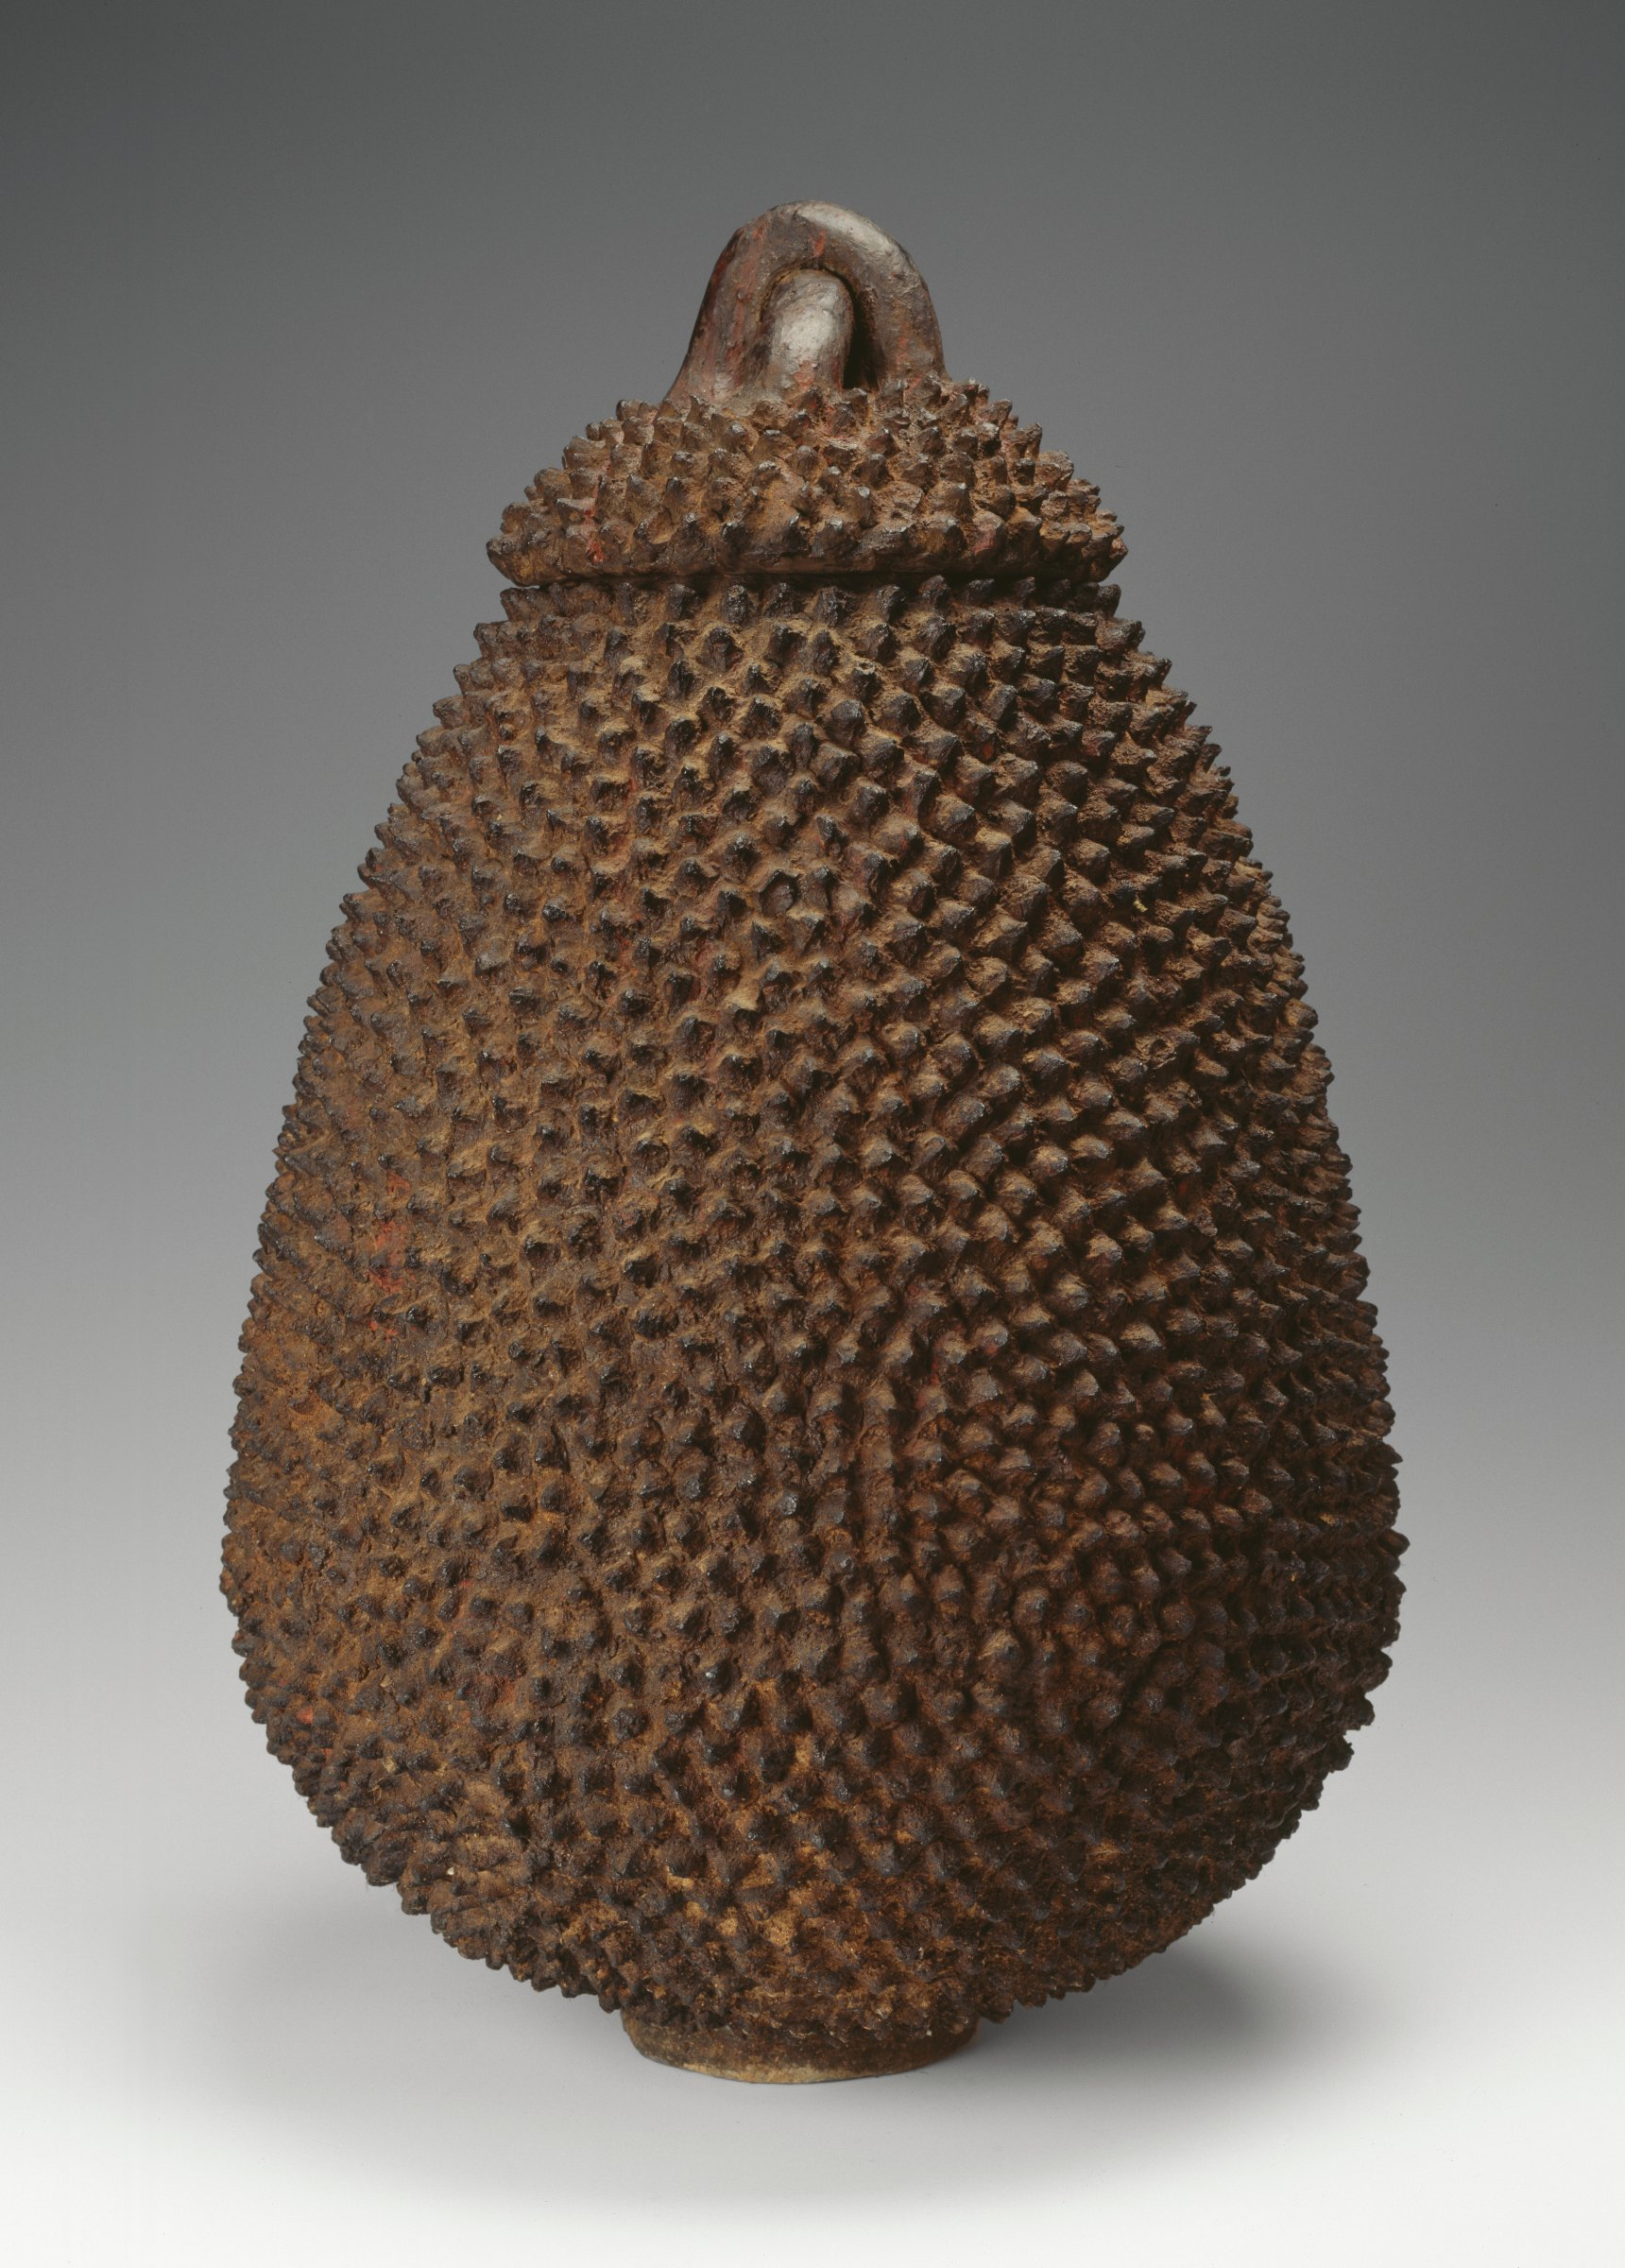 Pear-shaped, dark-brown vessel covered with raised points; lid also covered with points, has handle formed with two cylindrical loops, one atop the other, forming a cross. Thick patination found between points.